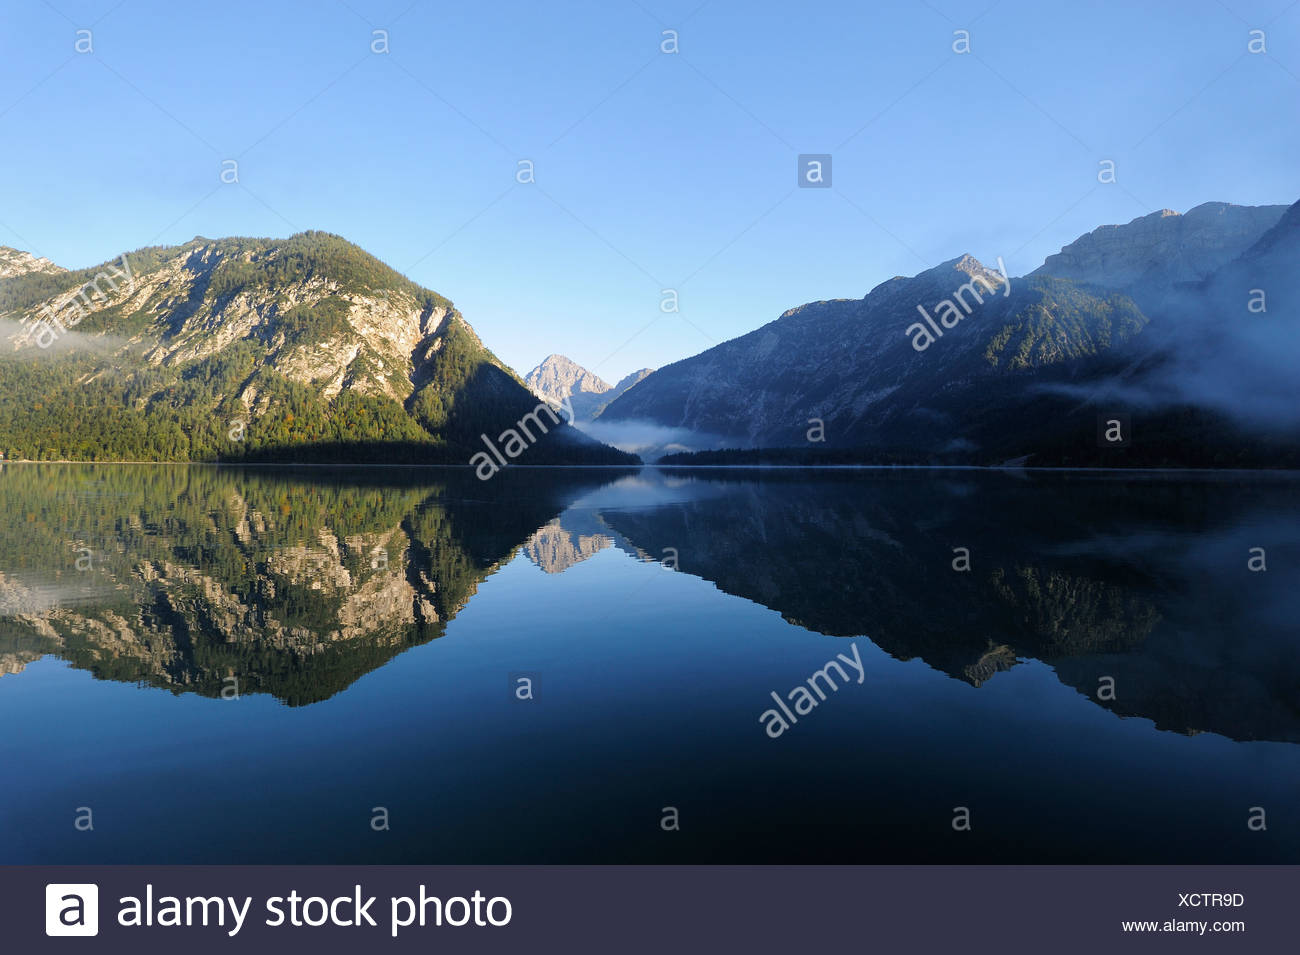 Plansee Lake, Ammergau Alps, Ammergebirge Mountains, looking towards Thaneller Mountain in the Lechtal Alps, Tyrol, Austria - Stock Image